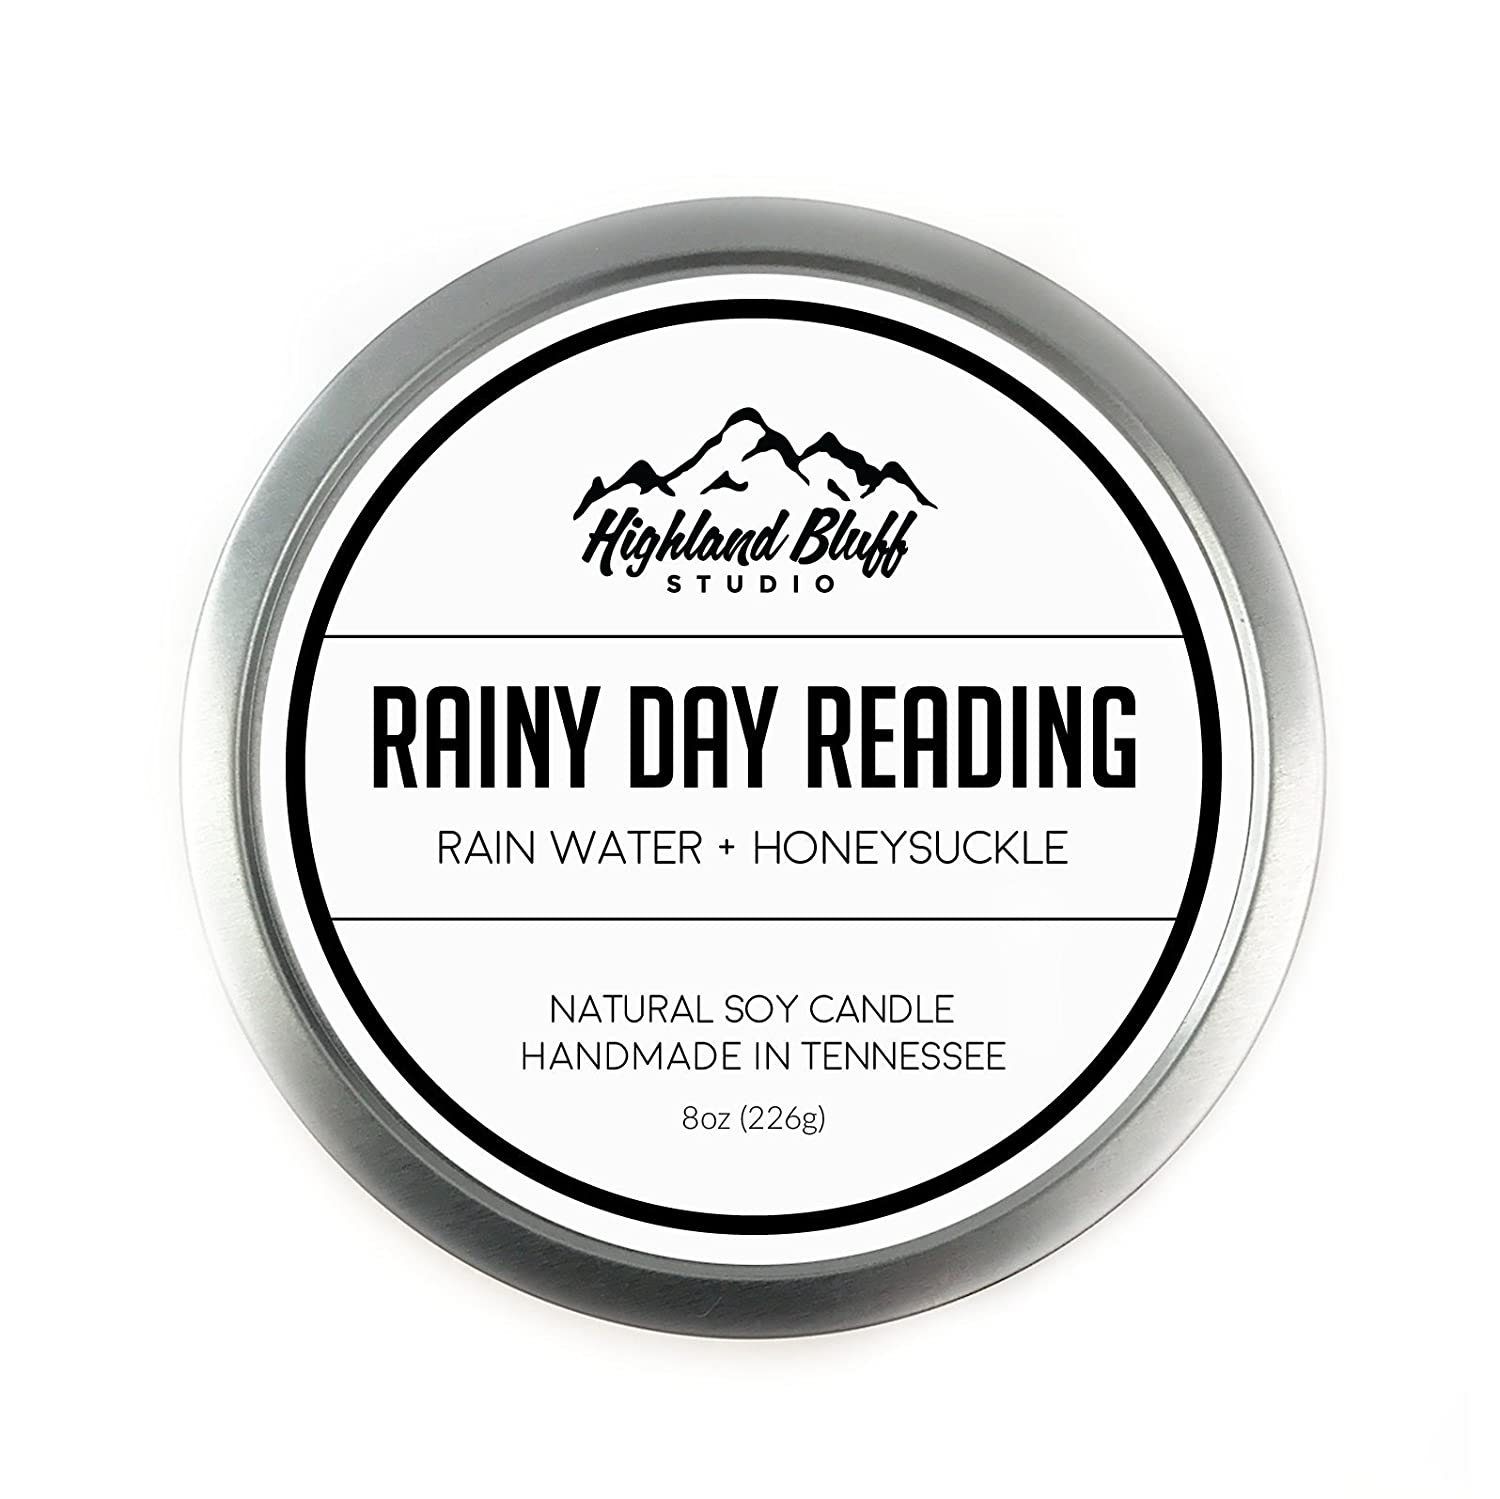 Rainy Day Reading - 8oz Soy Candle - Rain Water and Honeysuckle Highland Bluff Studio